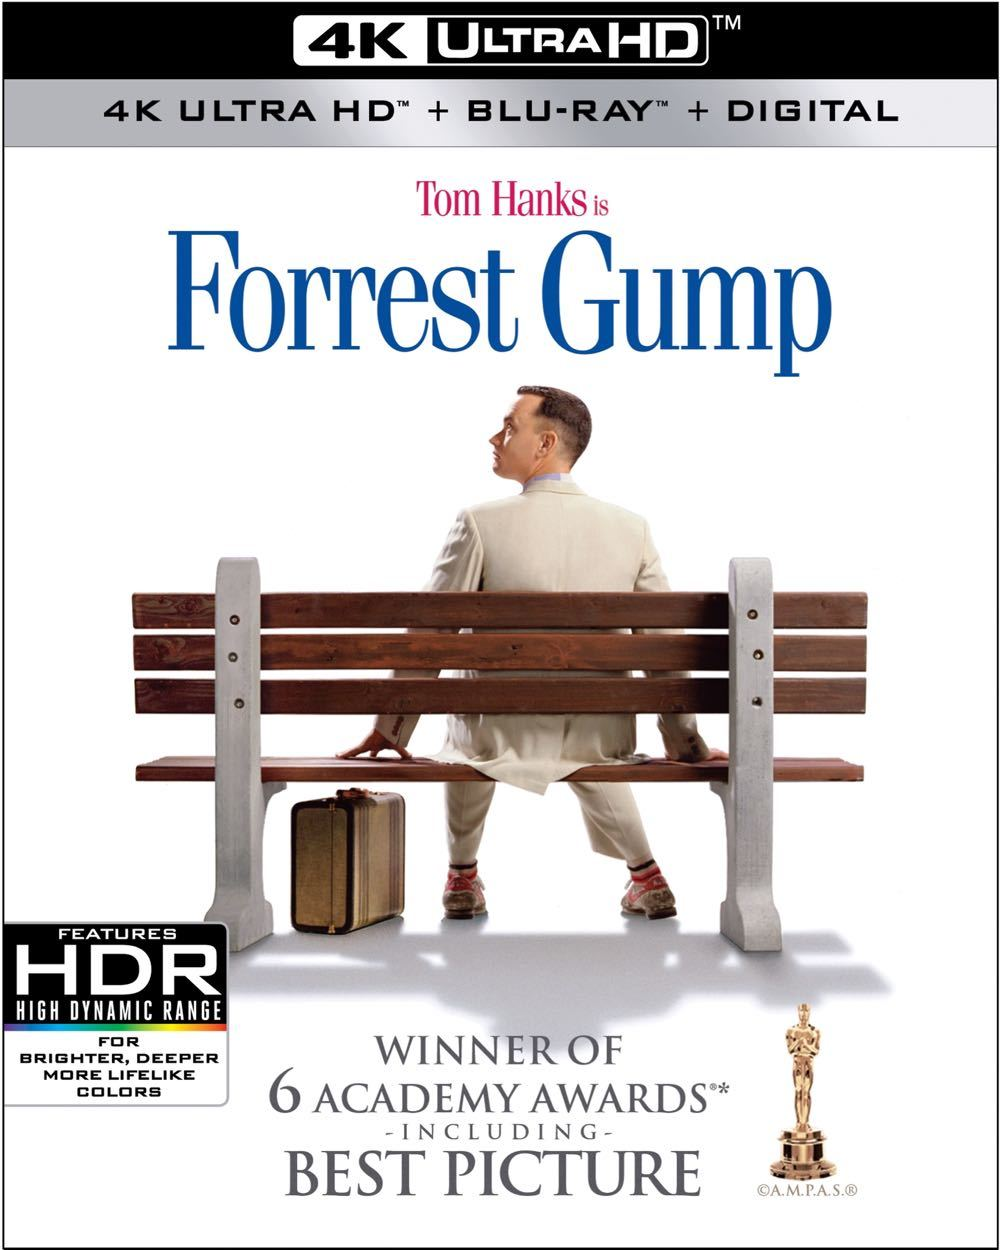 forest gump distinctive voices Forrest gump's two and a half hours run the gamut from humor and charm to tragedy and poignancy although epic in length and symbolic in treatment, the movie never loses sight of the intimate love story at its center.